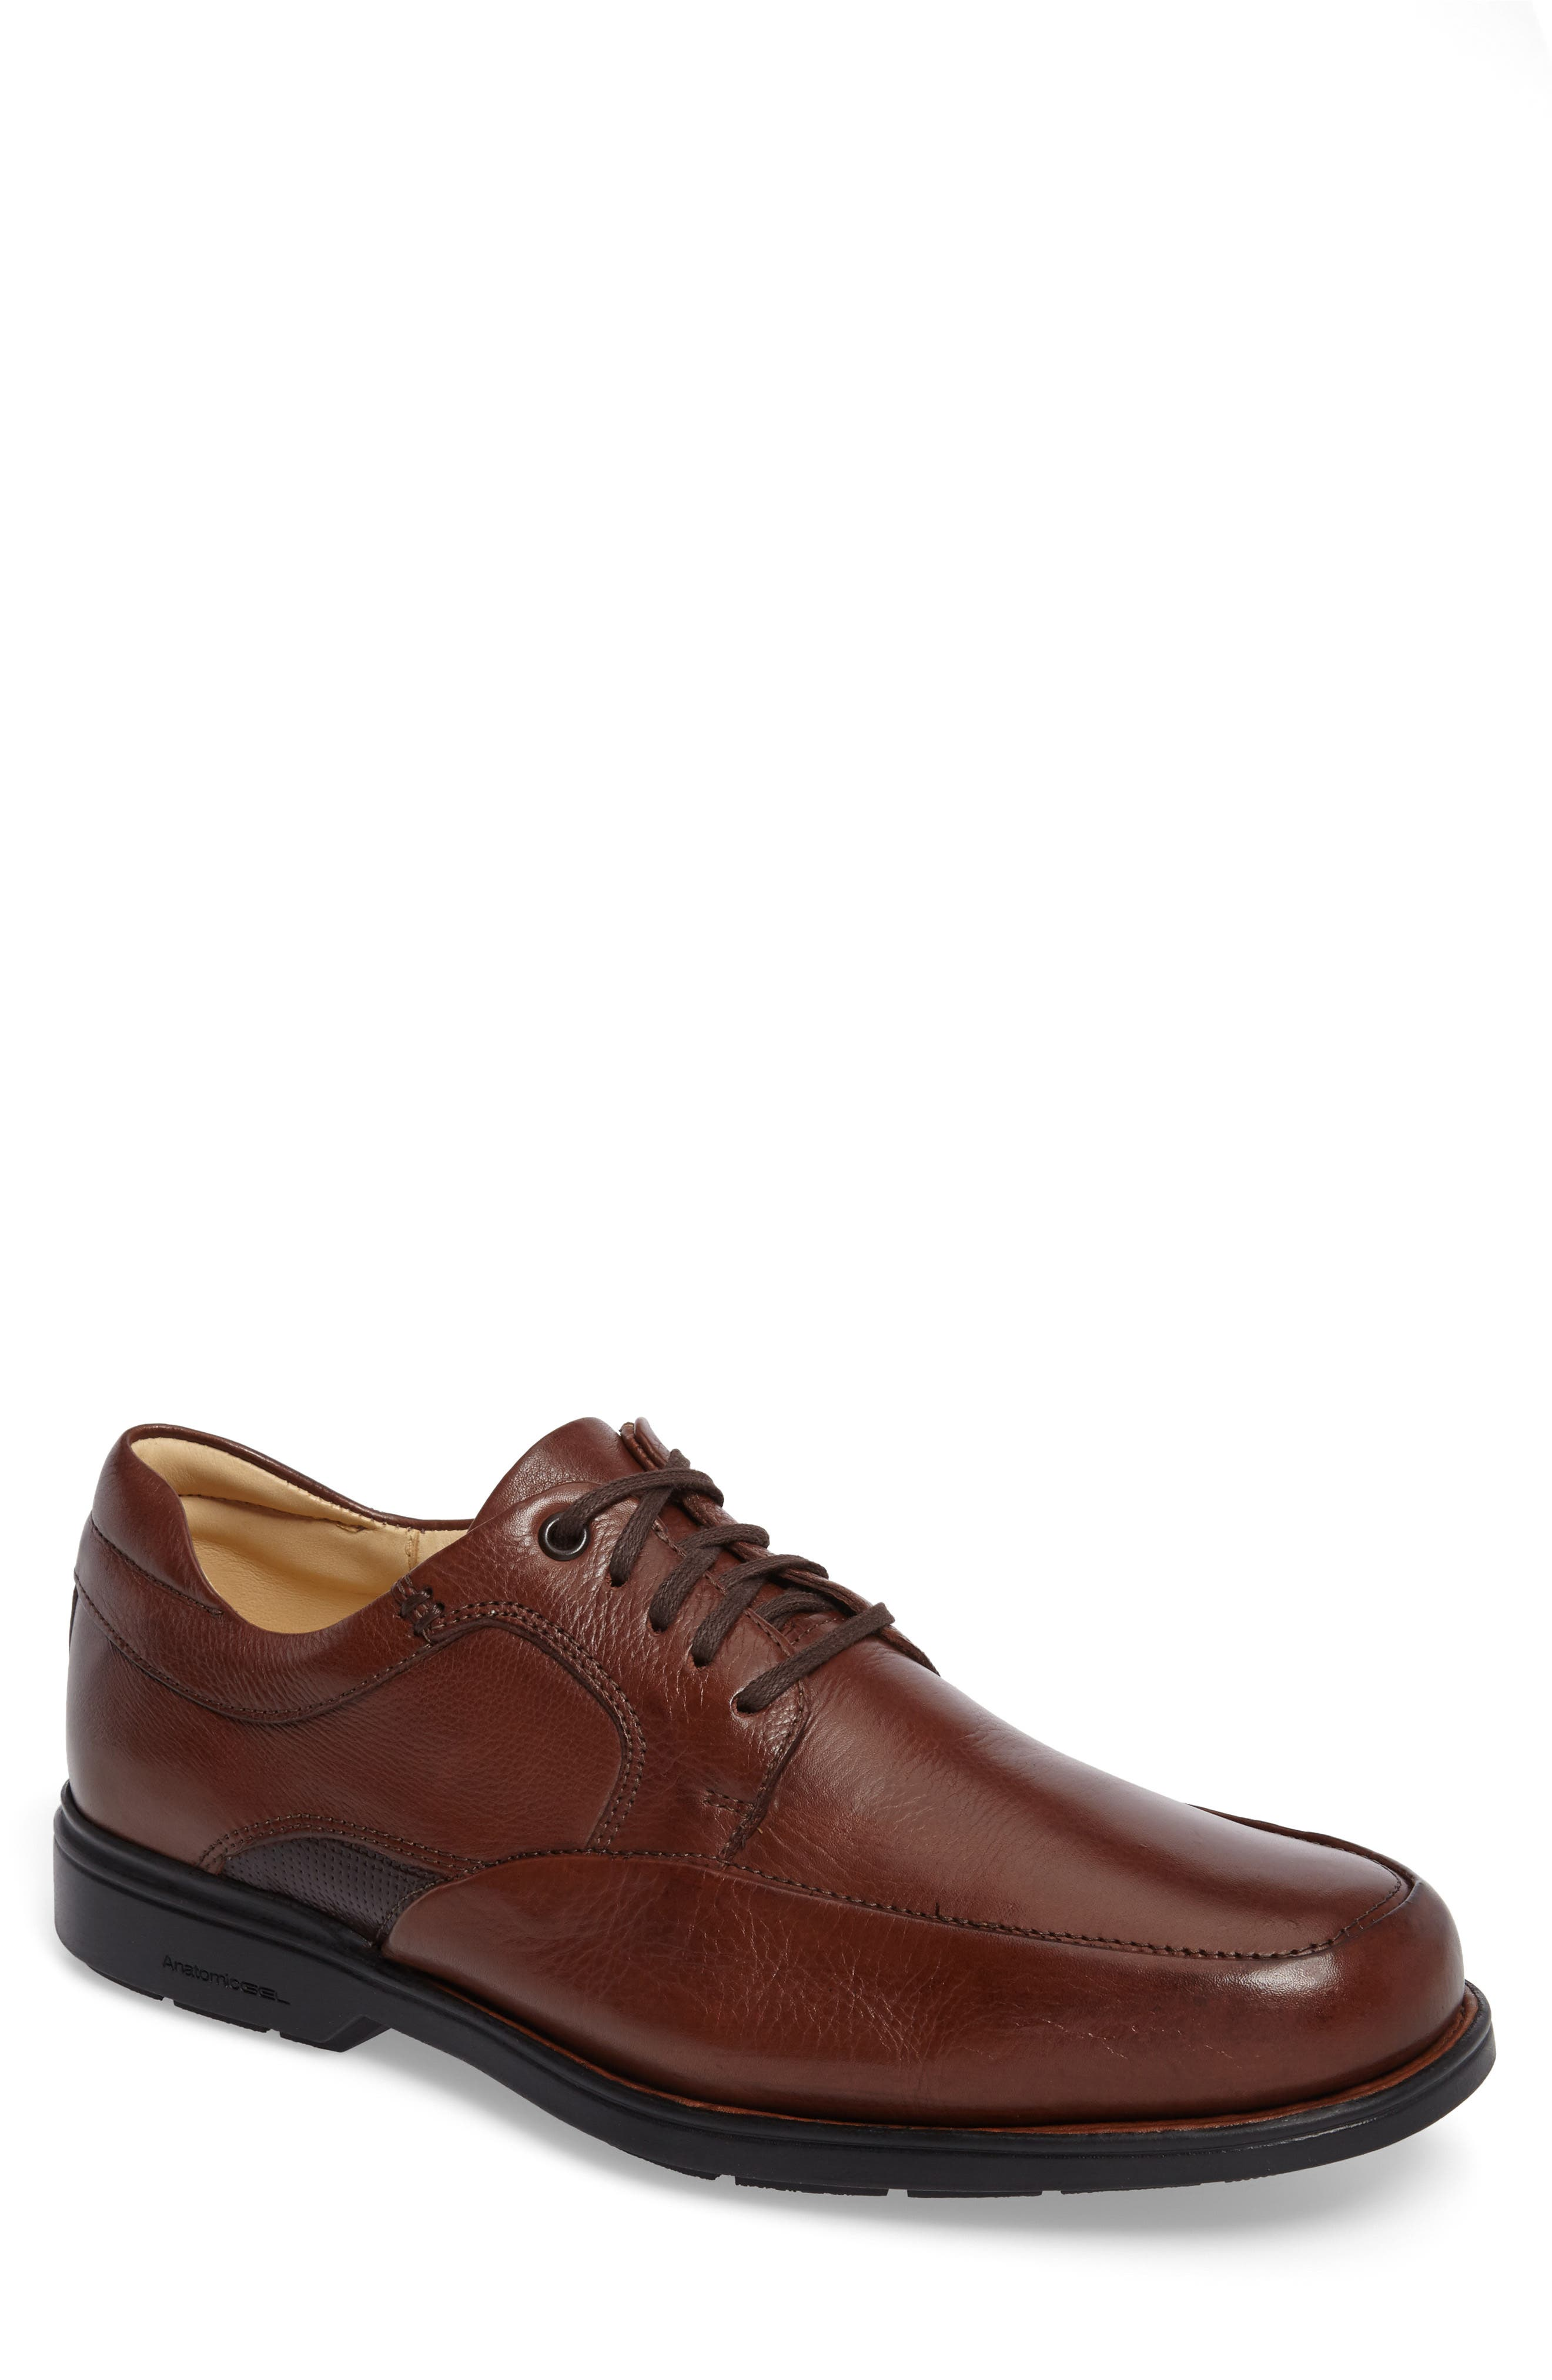 Anatomic & Co. Dracena Moc Toe Derby (Men)